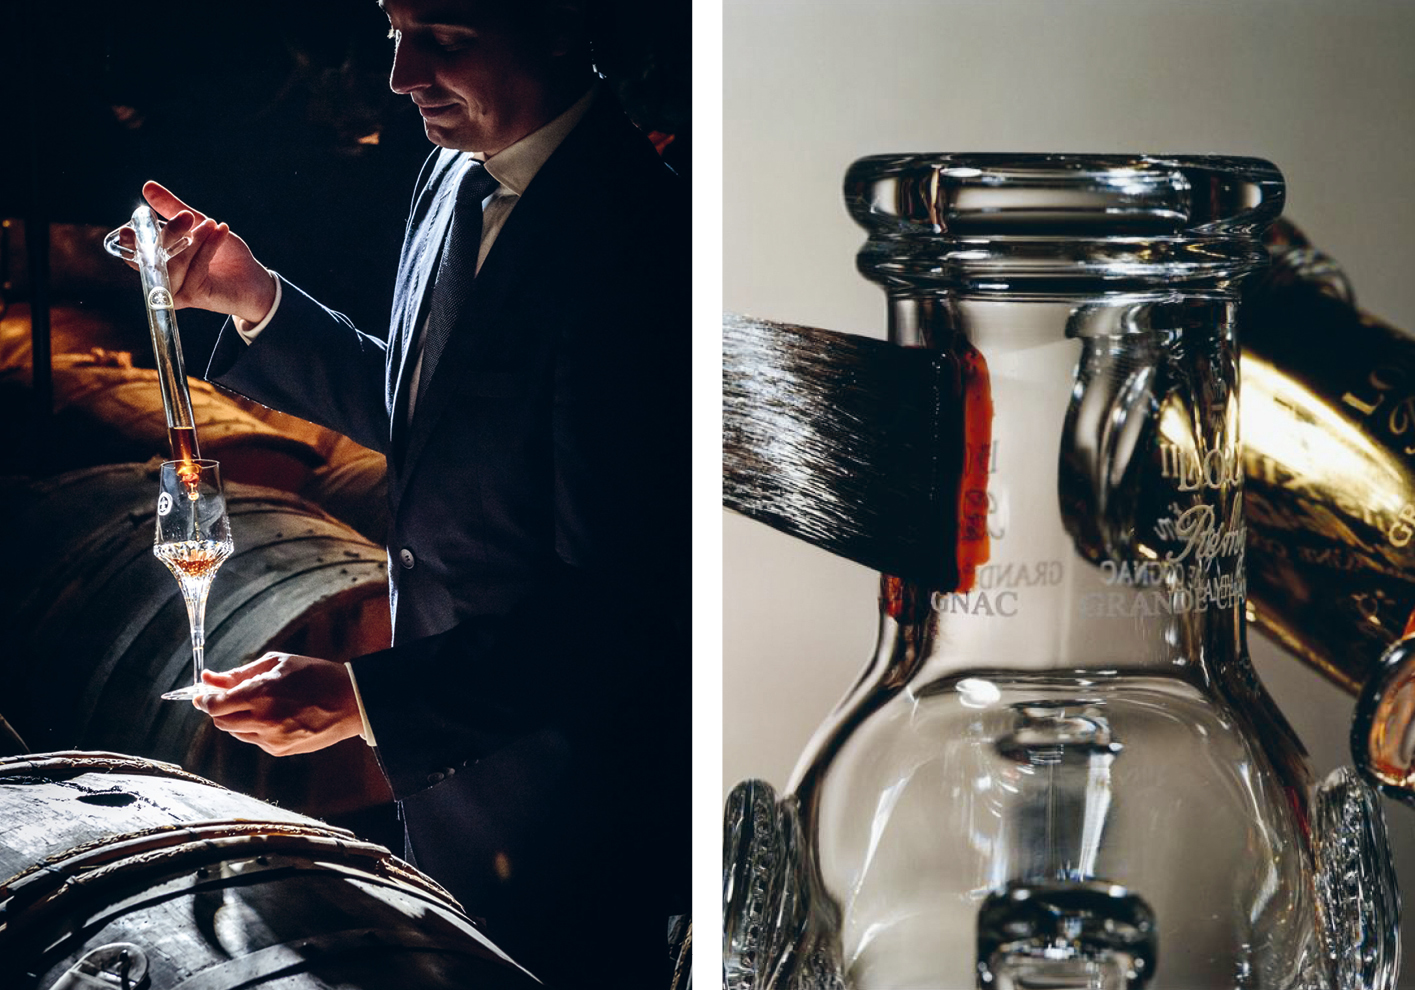 Louis XIII Cellar Master Baptiste Loiseau and the glass decanter